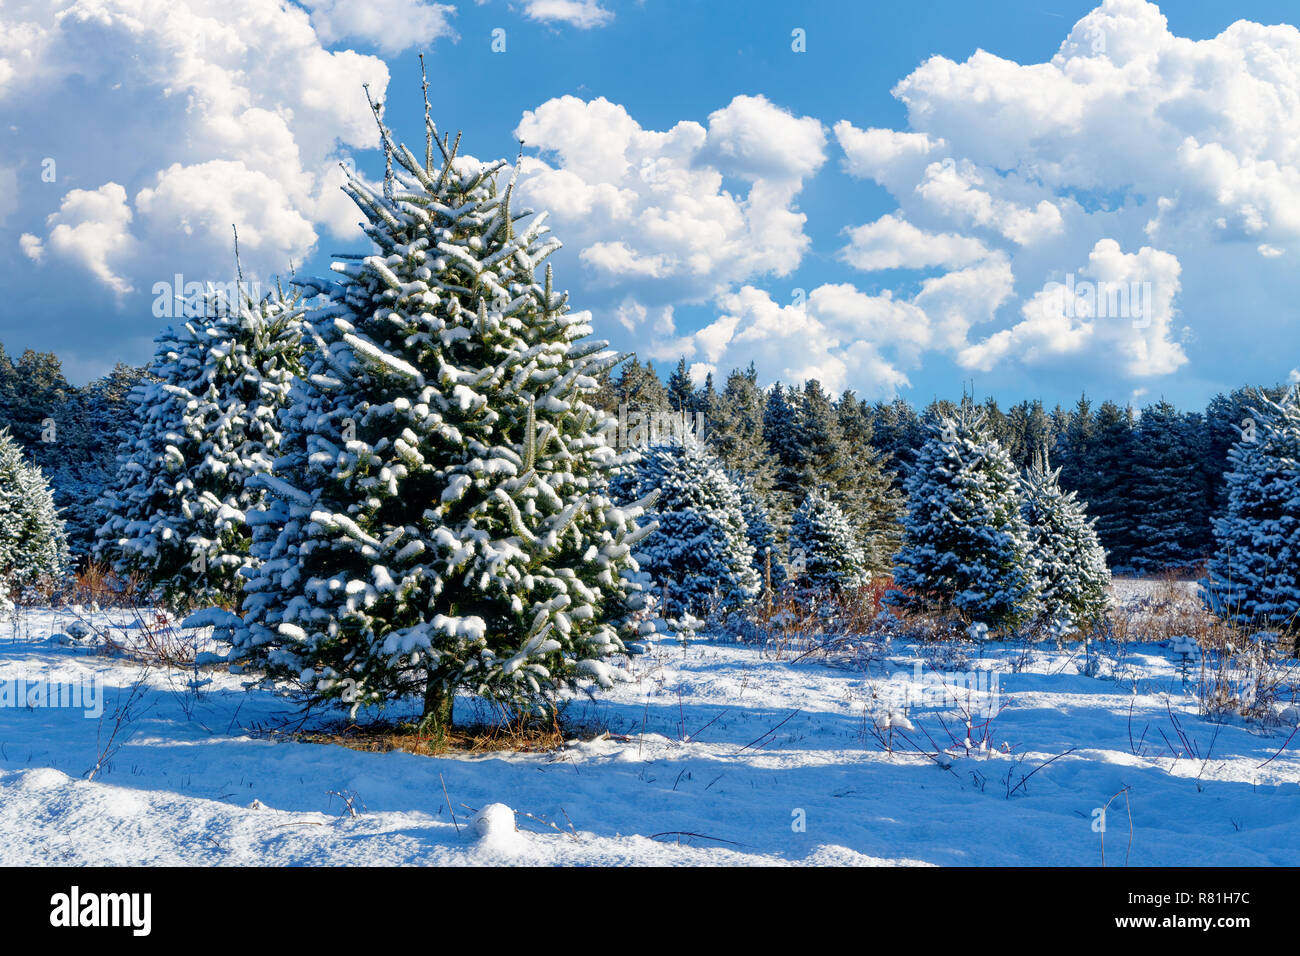 Balsam Fir Trees Stock Photos & Balsam Fir Trees Stock